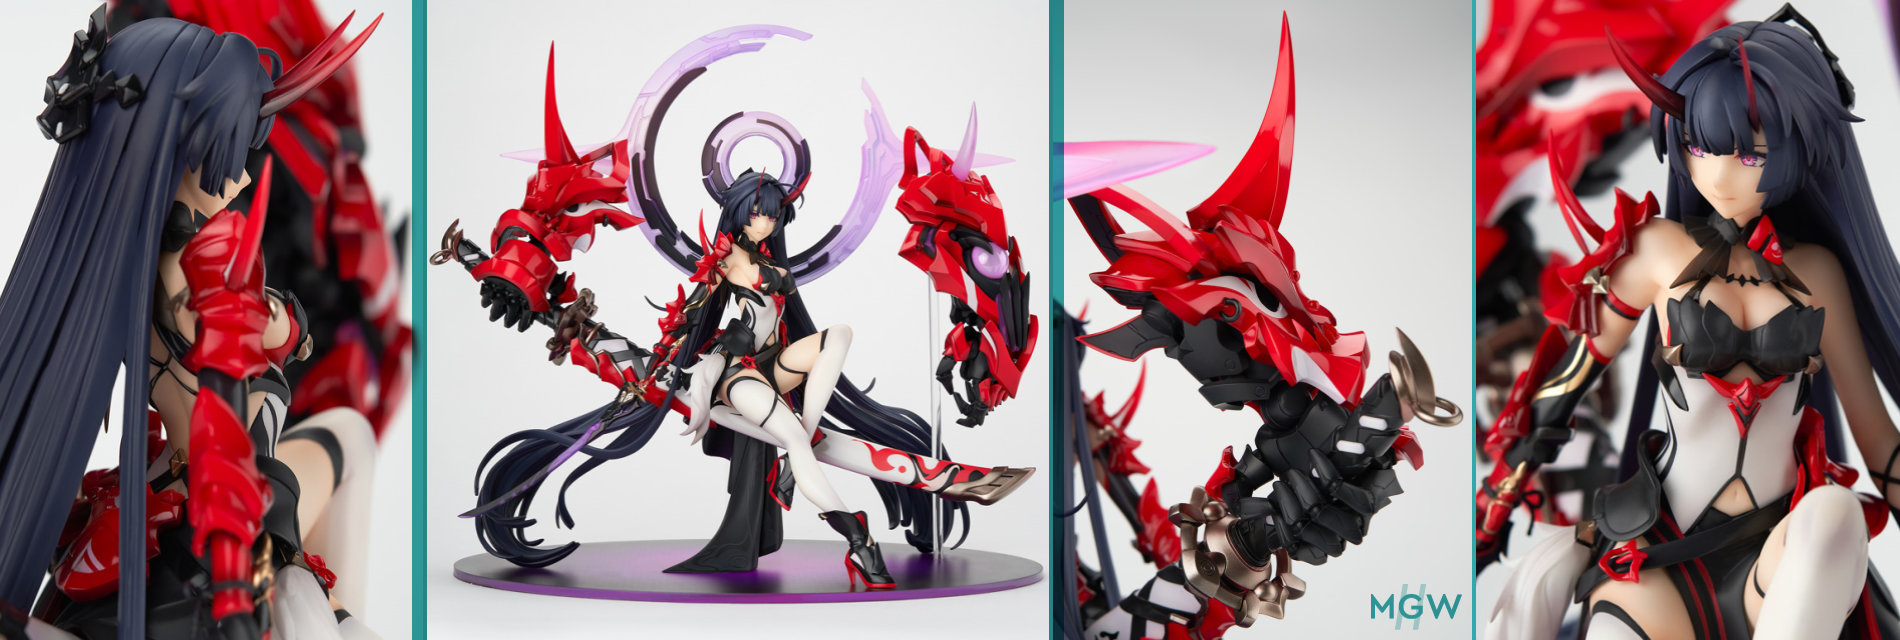 Raiden Mei Herrscher of Thunder Lament of the Fallen Ver. Expanded Edition by miHoYo x APEX from Houkai 3rd